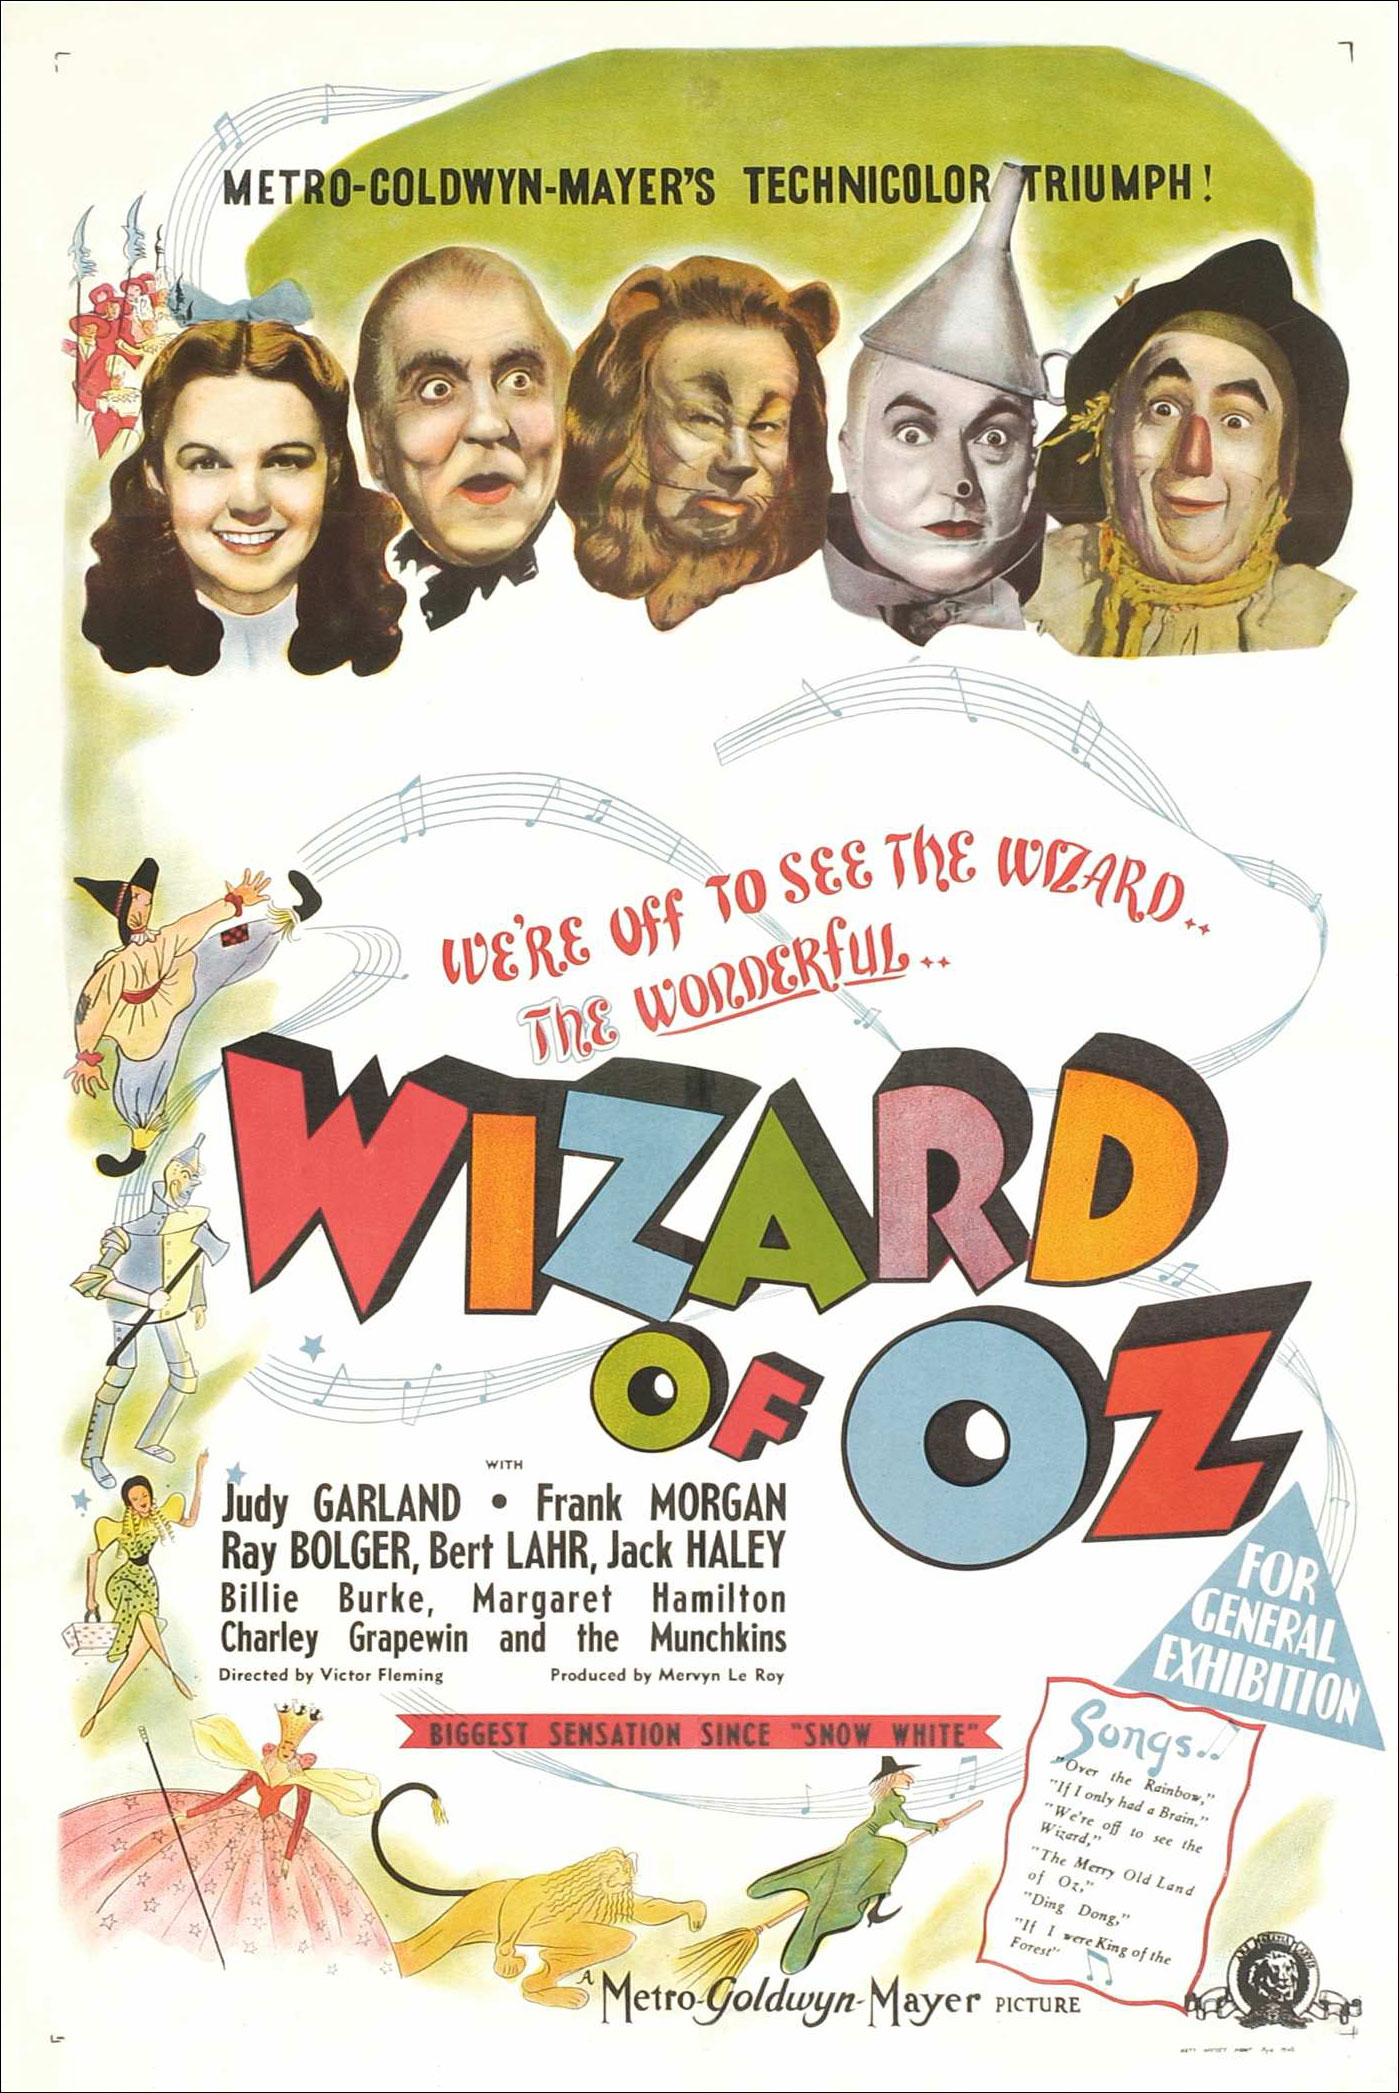 [FCPS] WIZARD OF OZ